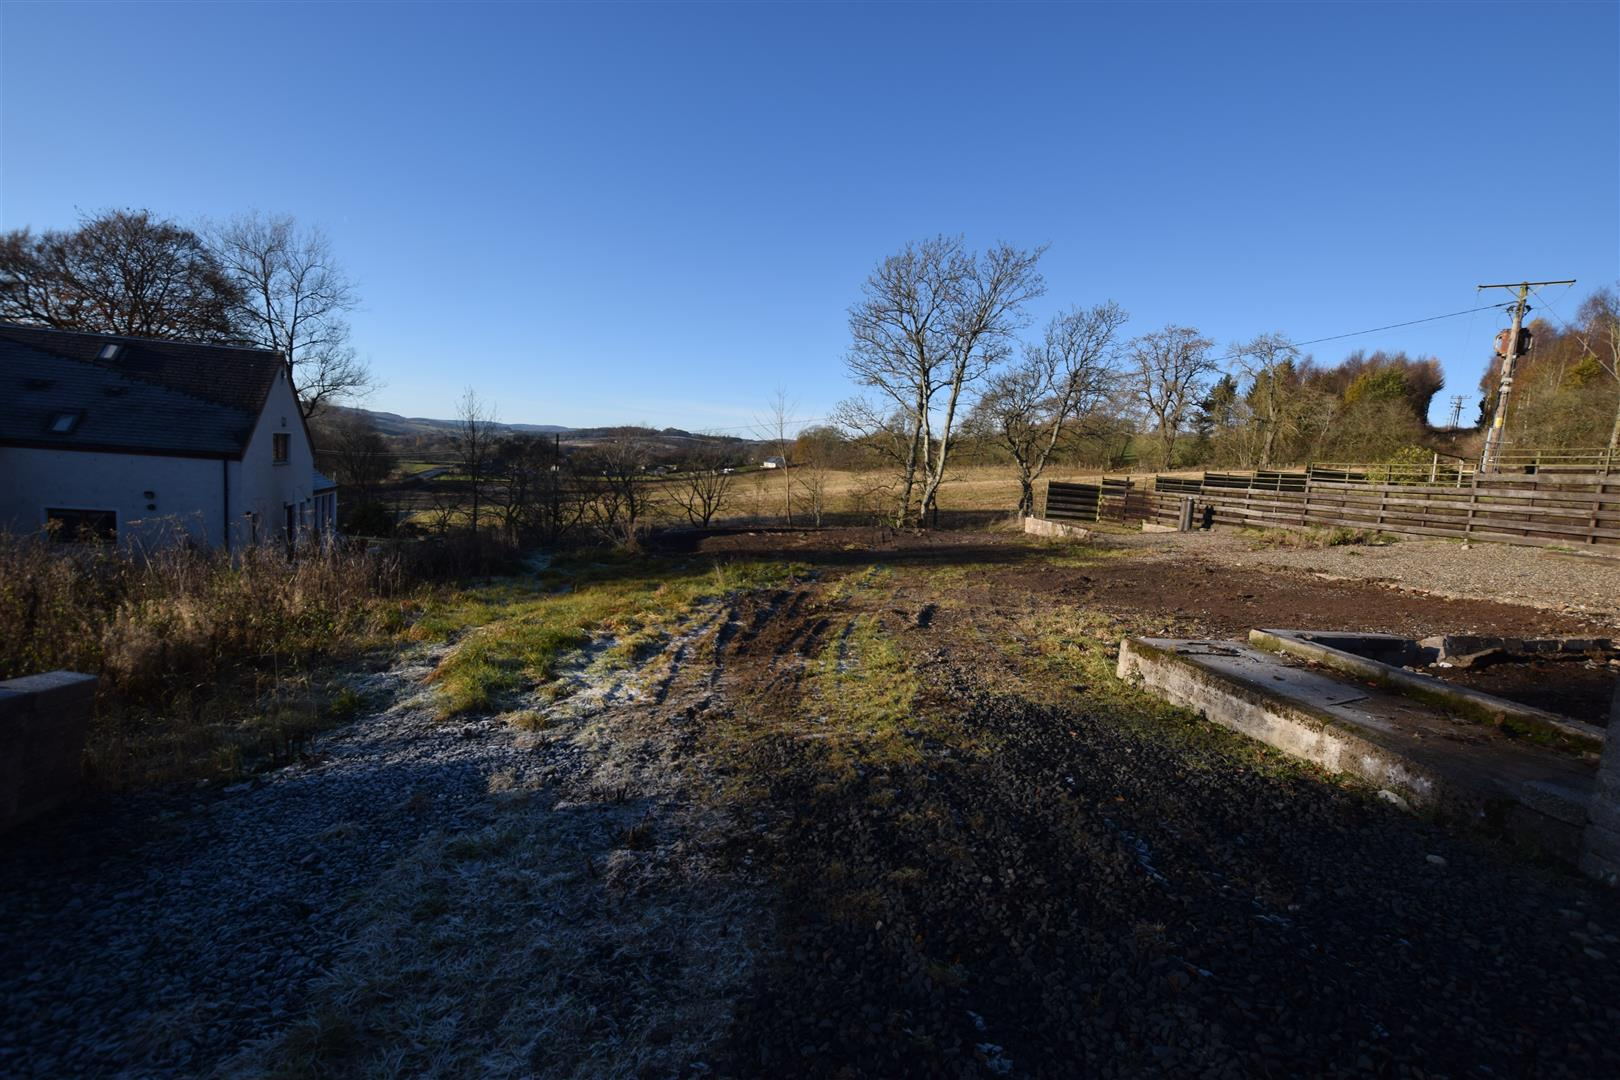 Plot, Lochview, Kinloch, Blairgowrie, Perthshire, PH10 6SD, UK